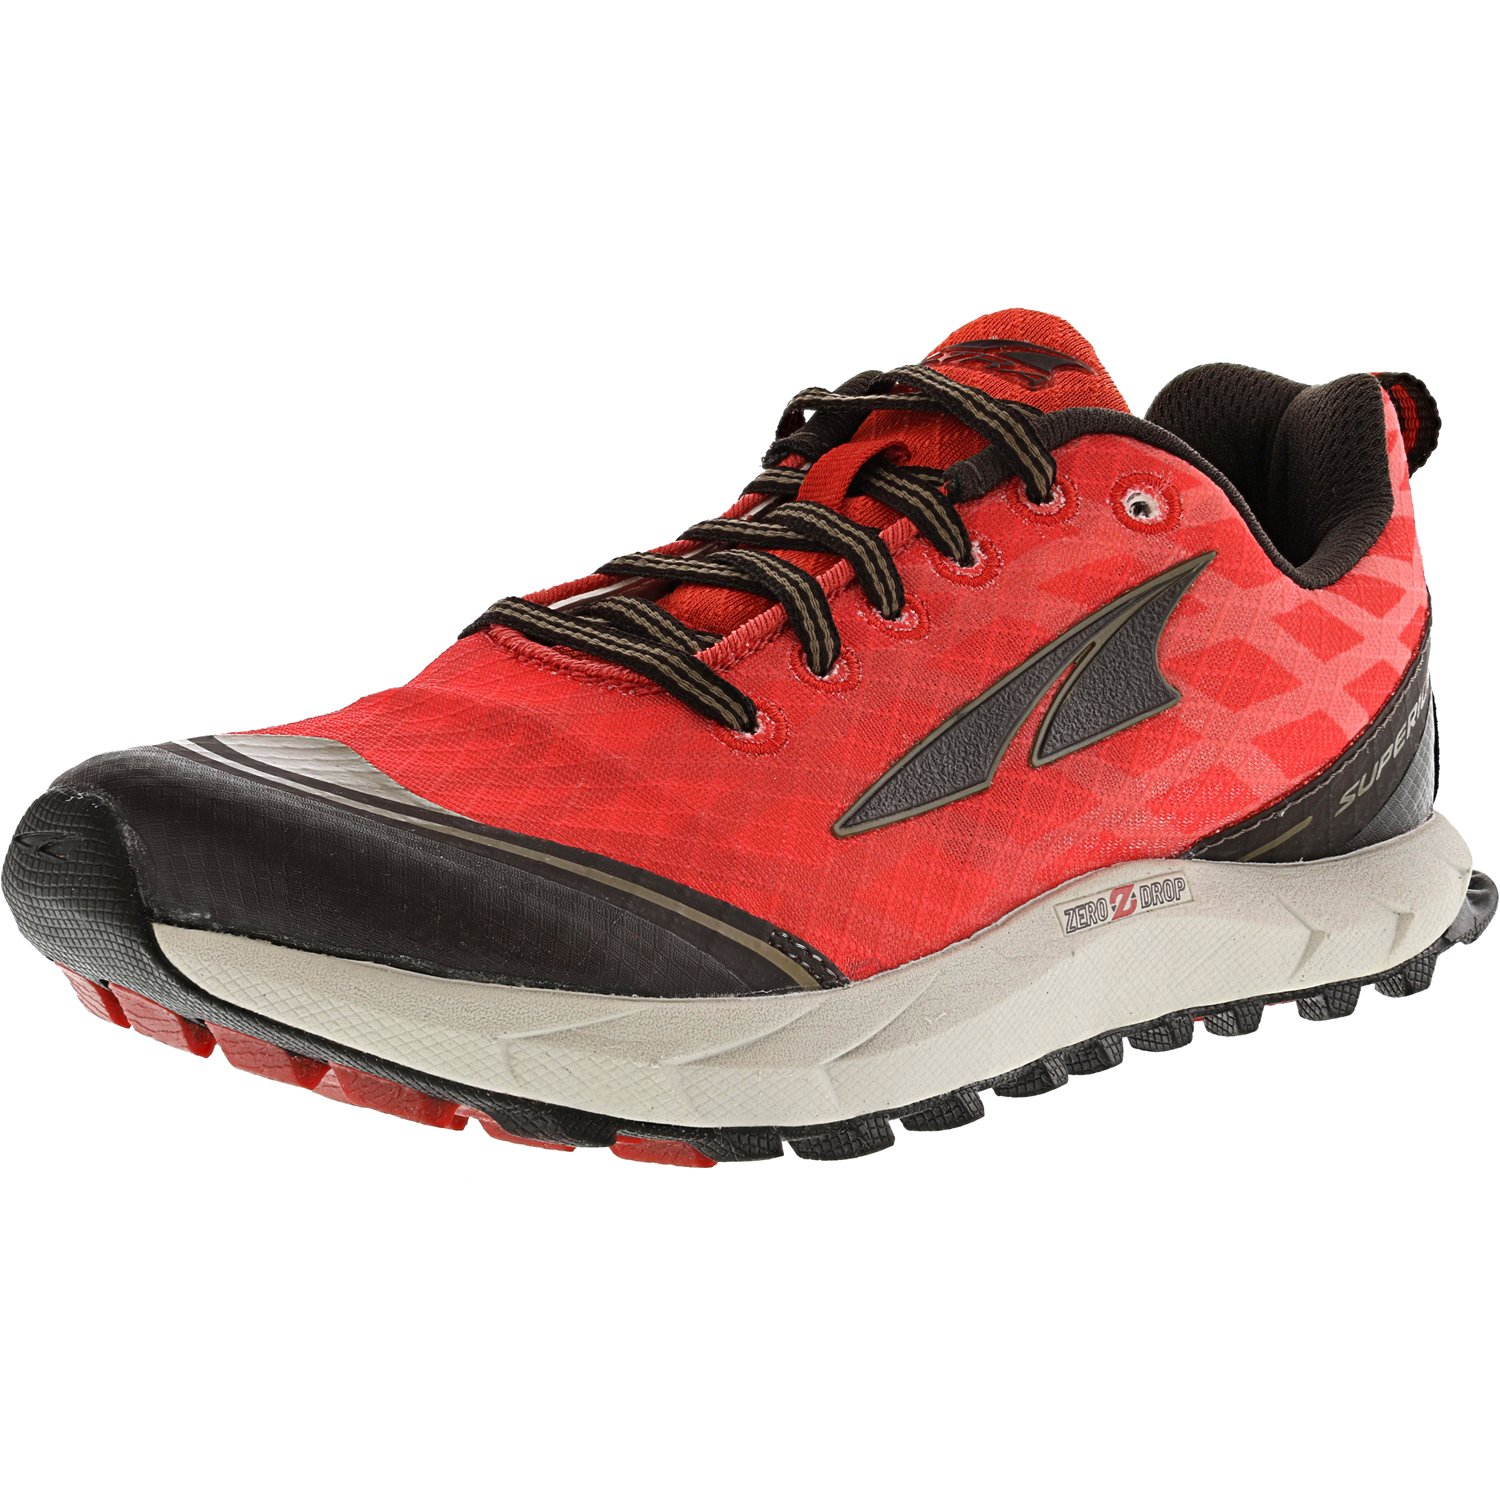 Altra Men's Superior 2.0 Poppy Red / Chocolate Ankle-High Running Shoe - 5.5M